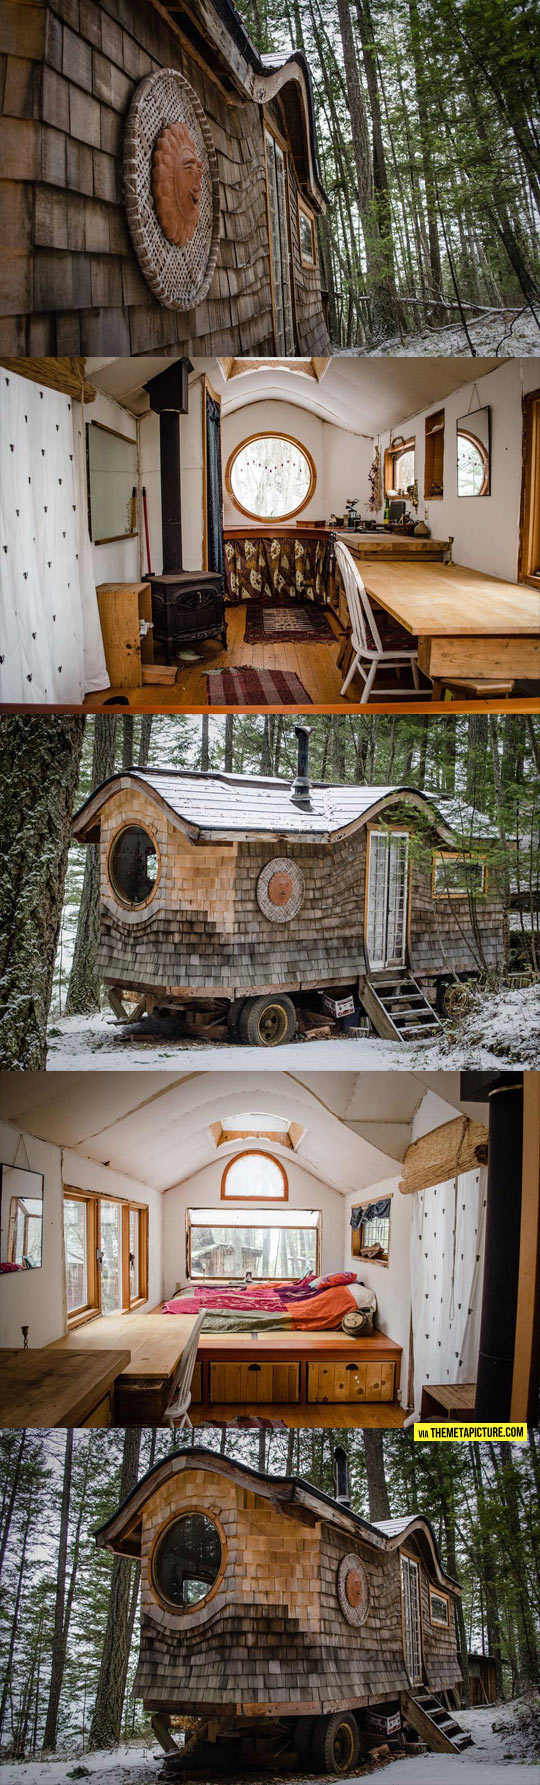 cool-little-house-forest-cozy